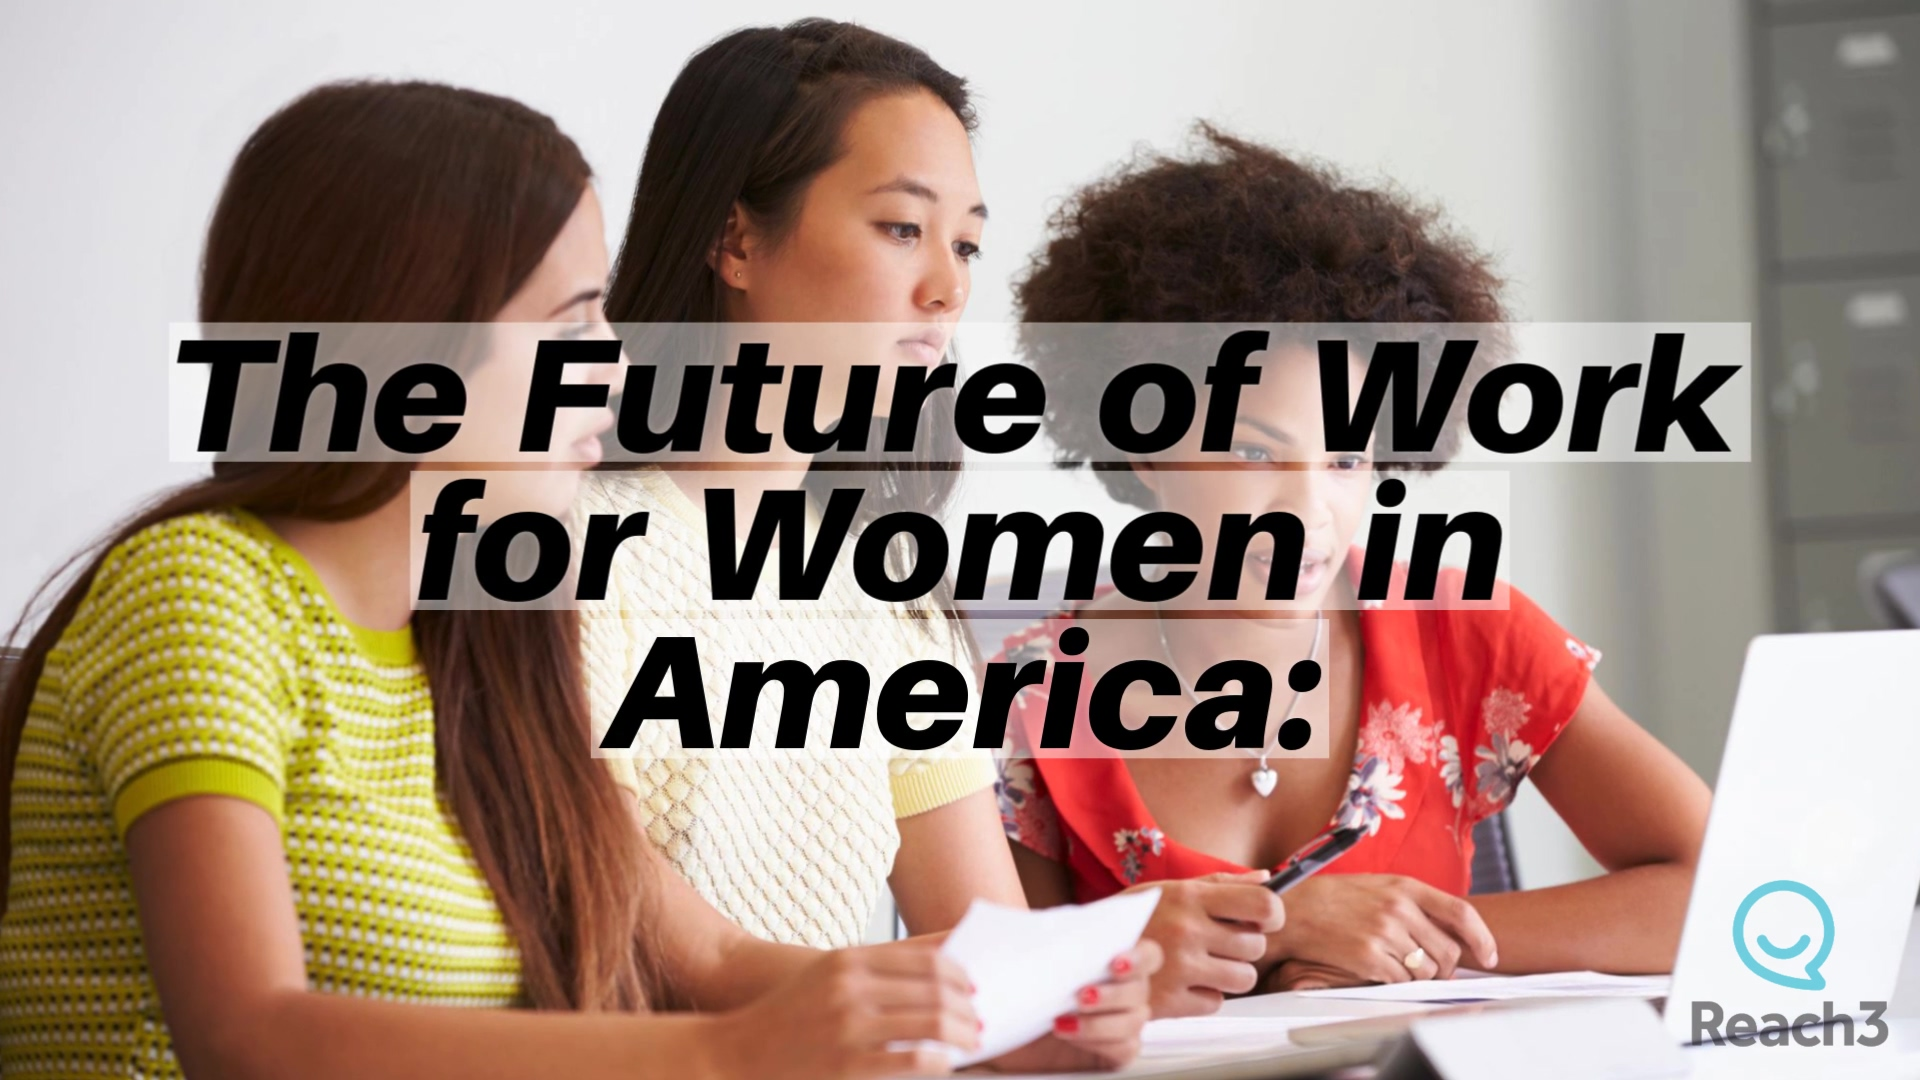 The_Future_of_Work_for_Women_in_America_1080p-1